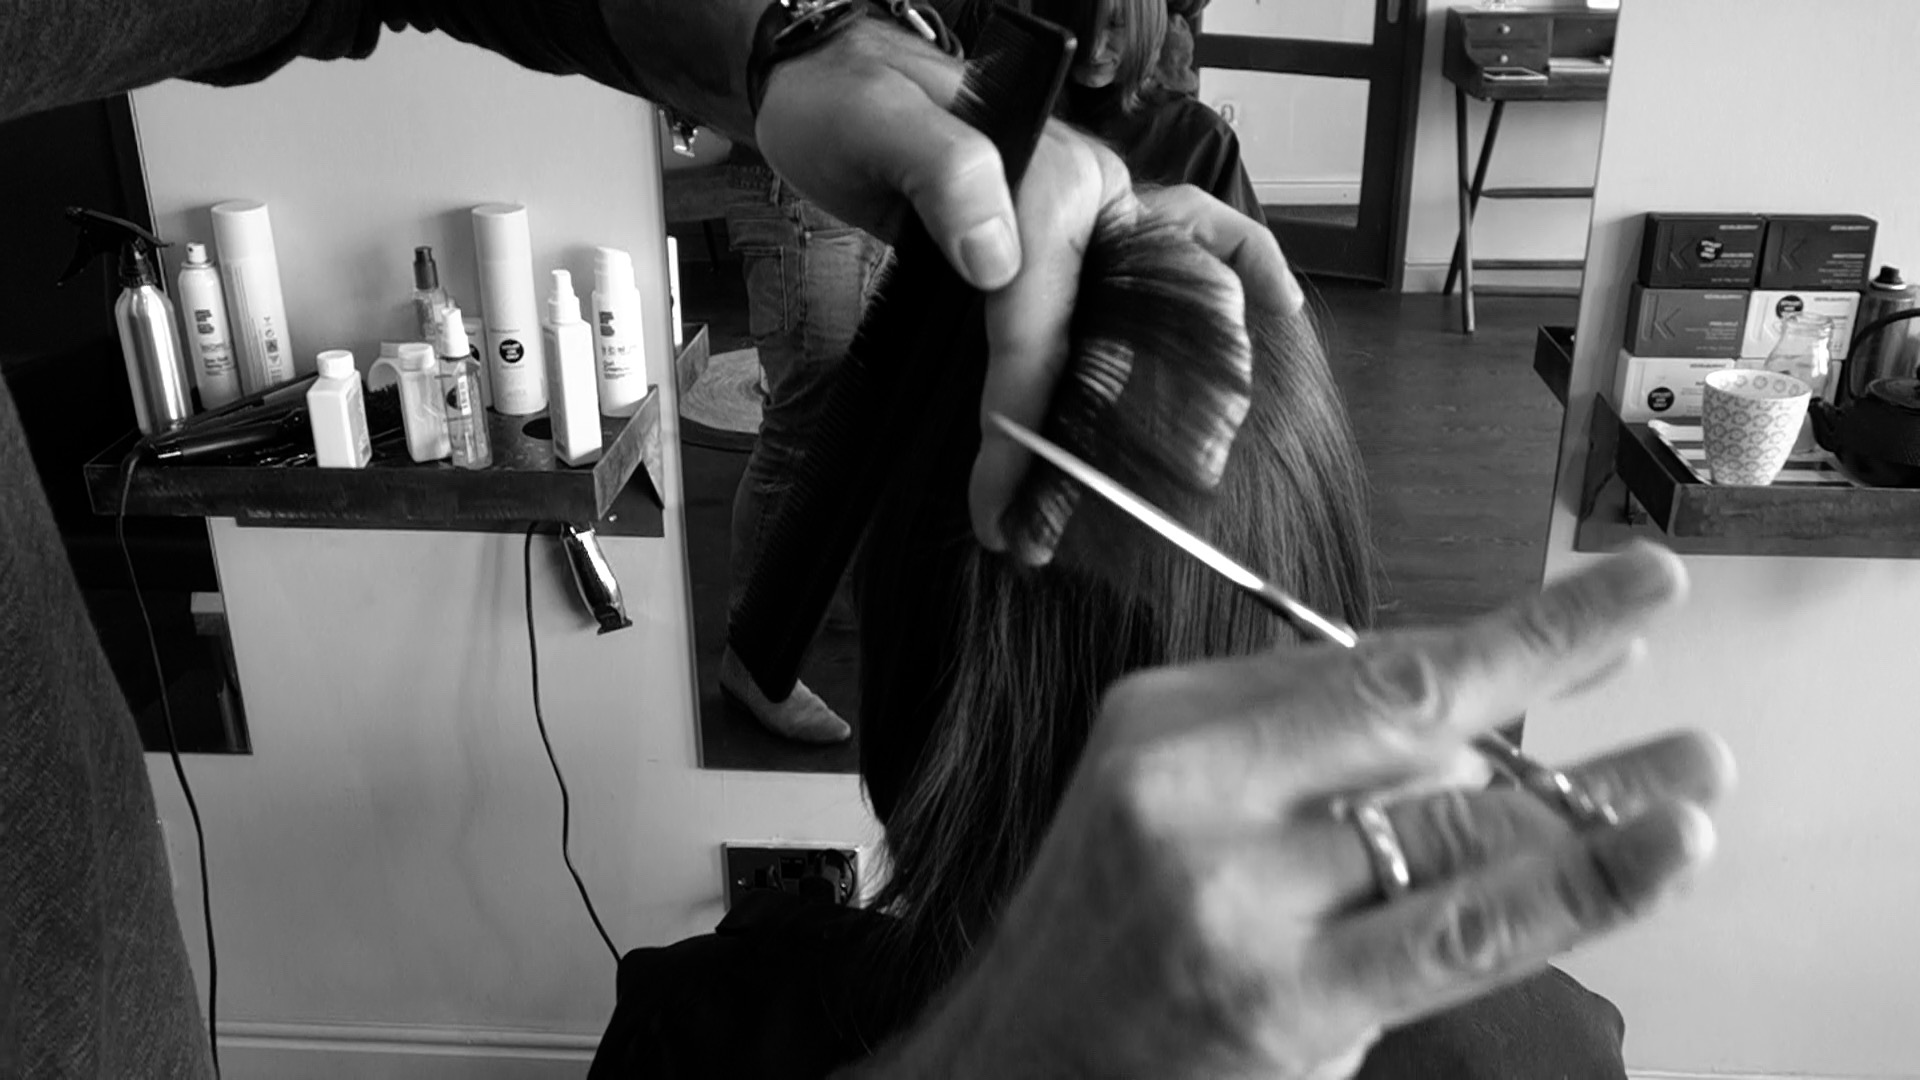 A hairdresser with scissors in hand point cutting hair